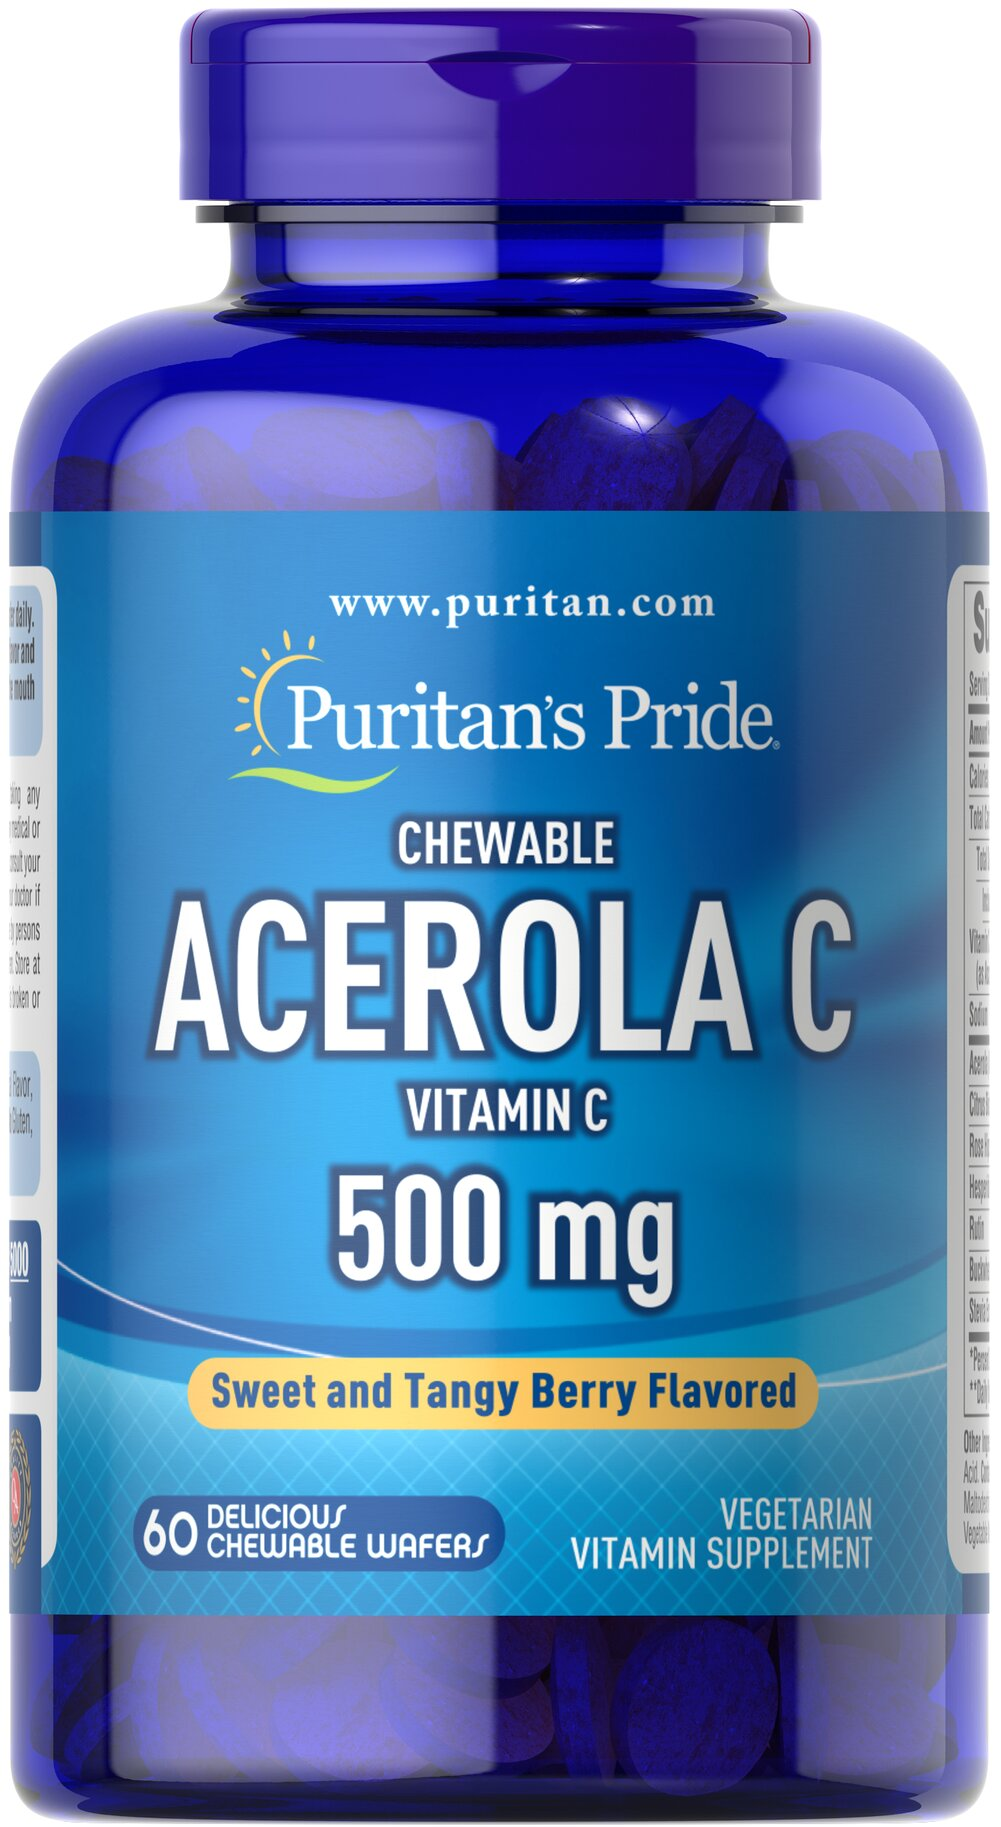 Chewable Acerola C 500 mg Thumbnail Alternate Bottle View